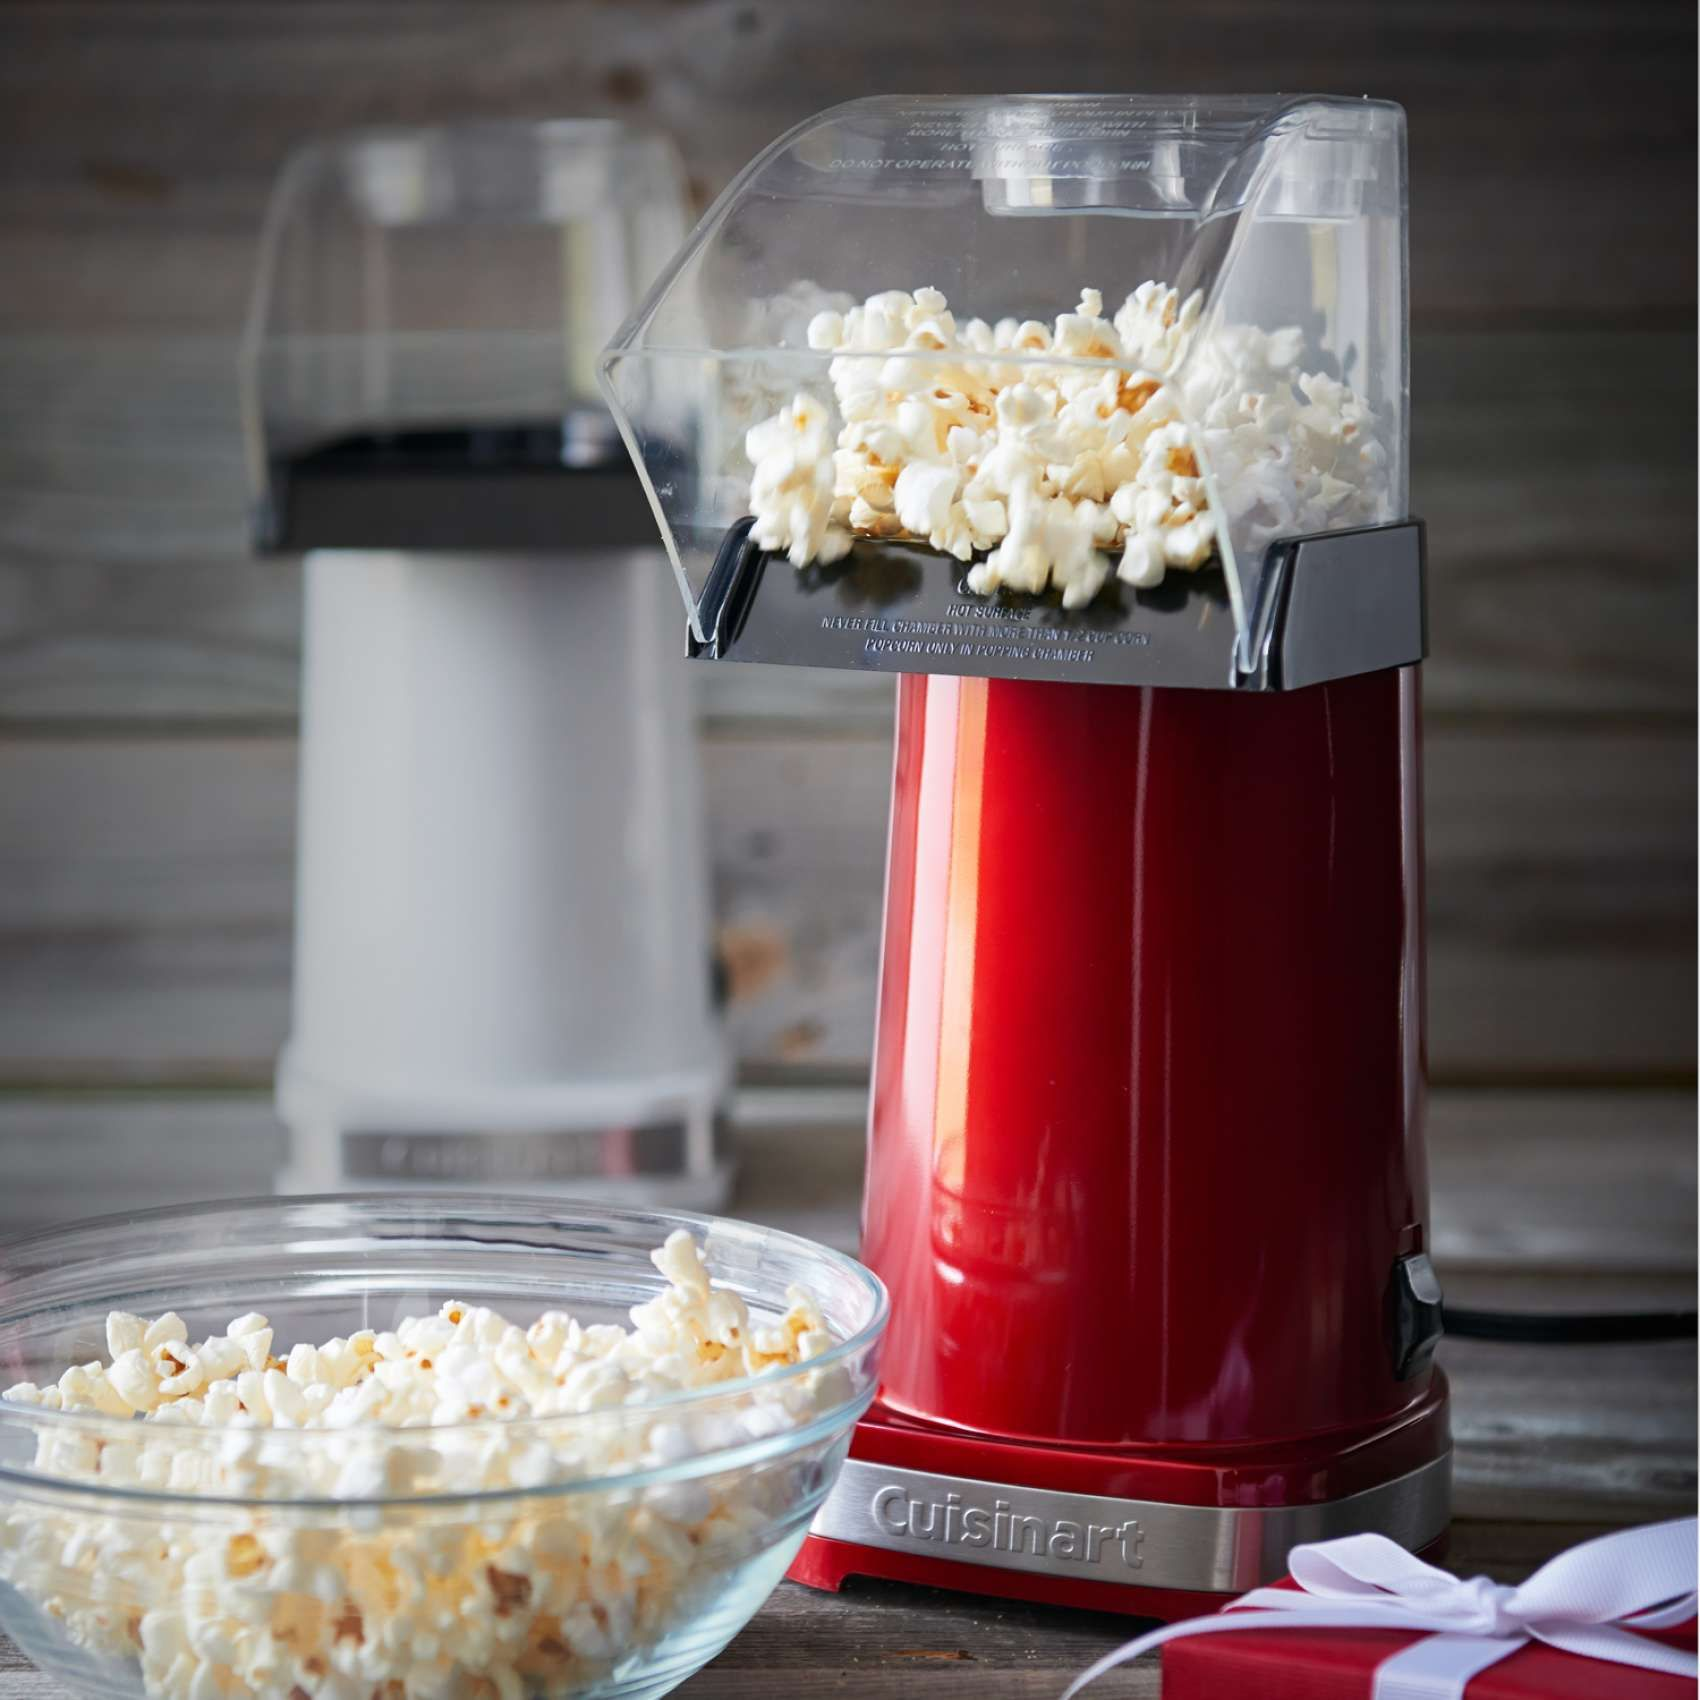 Cuisinart EasyPop Hot Air Popcorn Maker Air popcorn